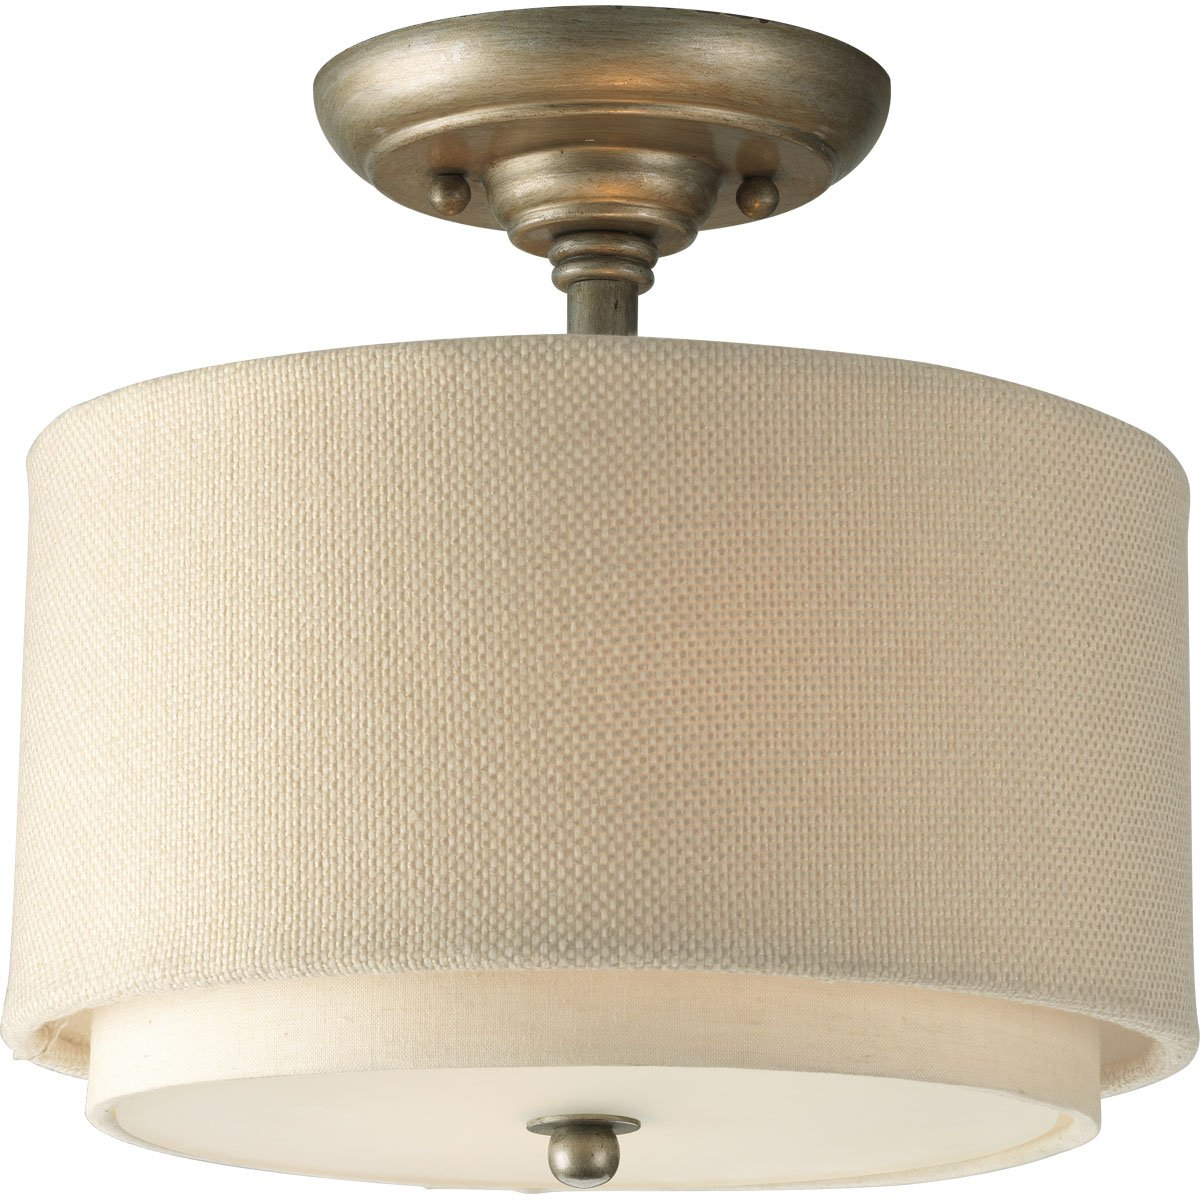 Progress lighting p3886 134 2 light semi flush with double drum progress lighting p3886 134 2 light semi flush with double drum shades and toasted linen fabric chain and ceiling mounts both included silver ridge close aloadofball Choice Image